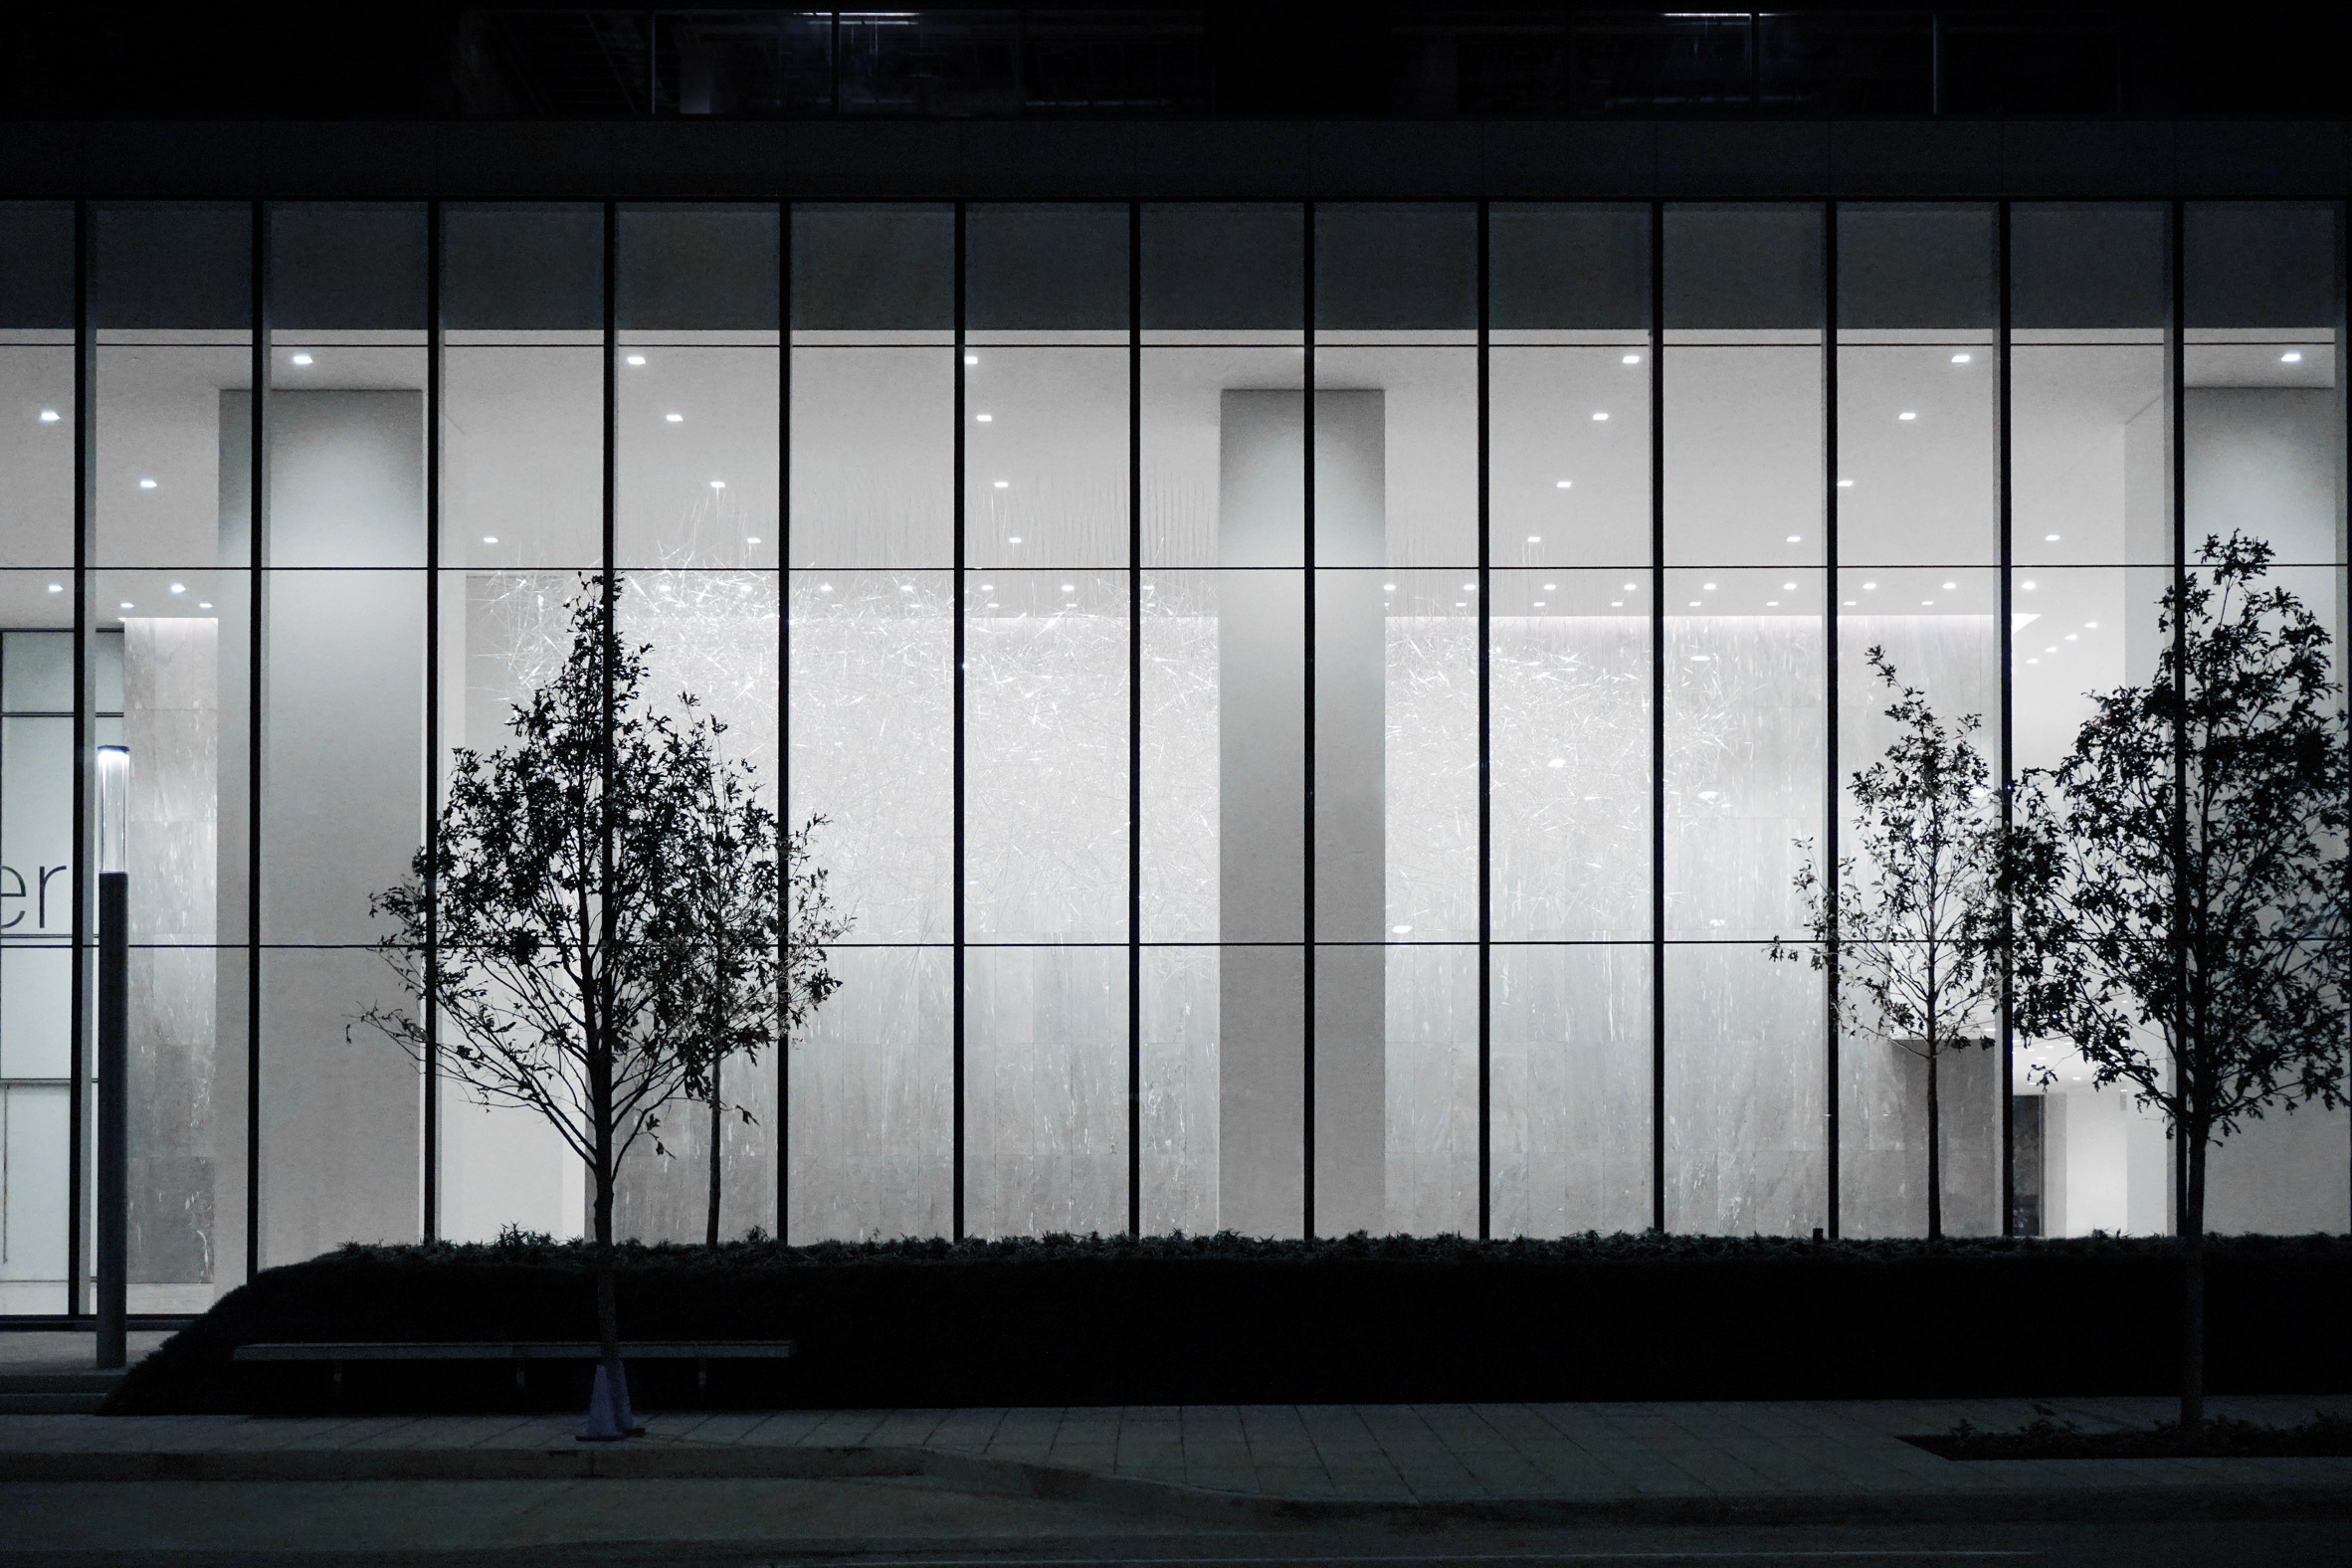 Tokujin Yoshioka creates cloud sculpture from thousands of acrylic rods